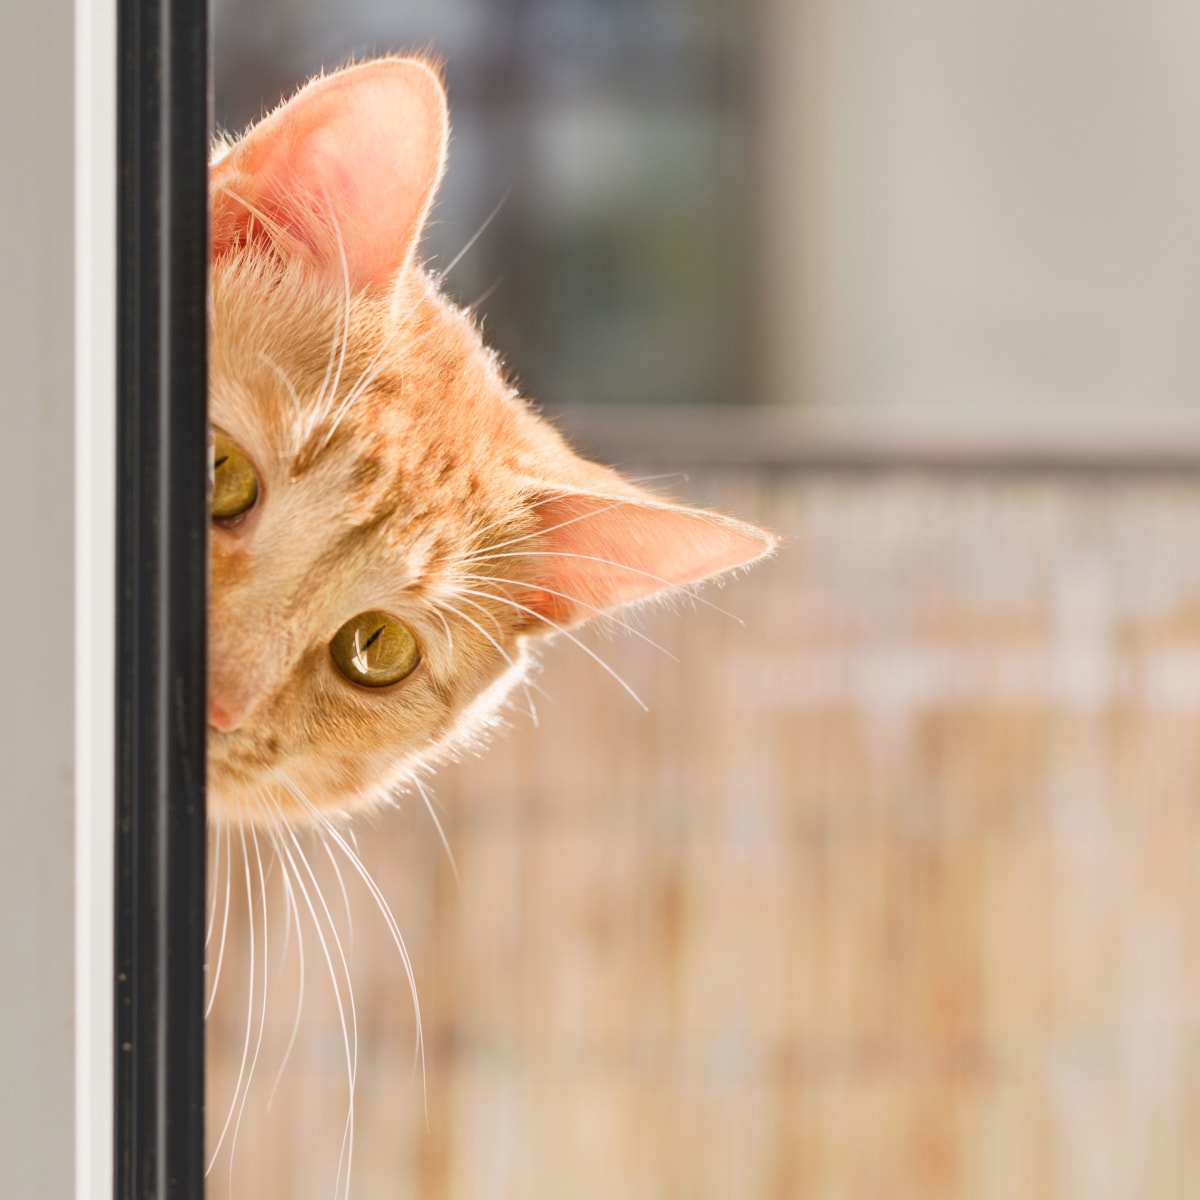 When The Cia Learned Cats Make Bad Spies History